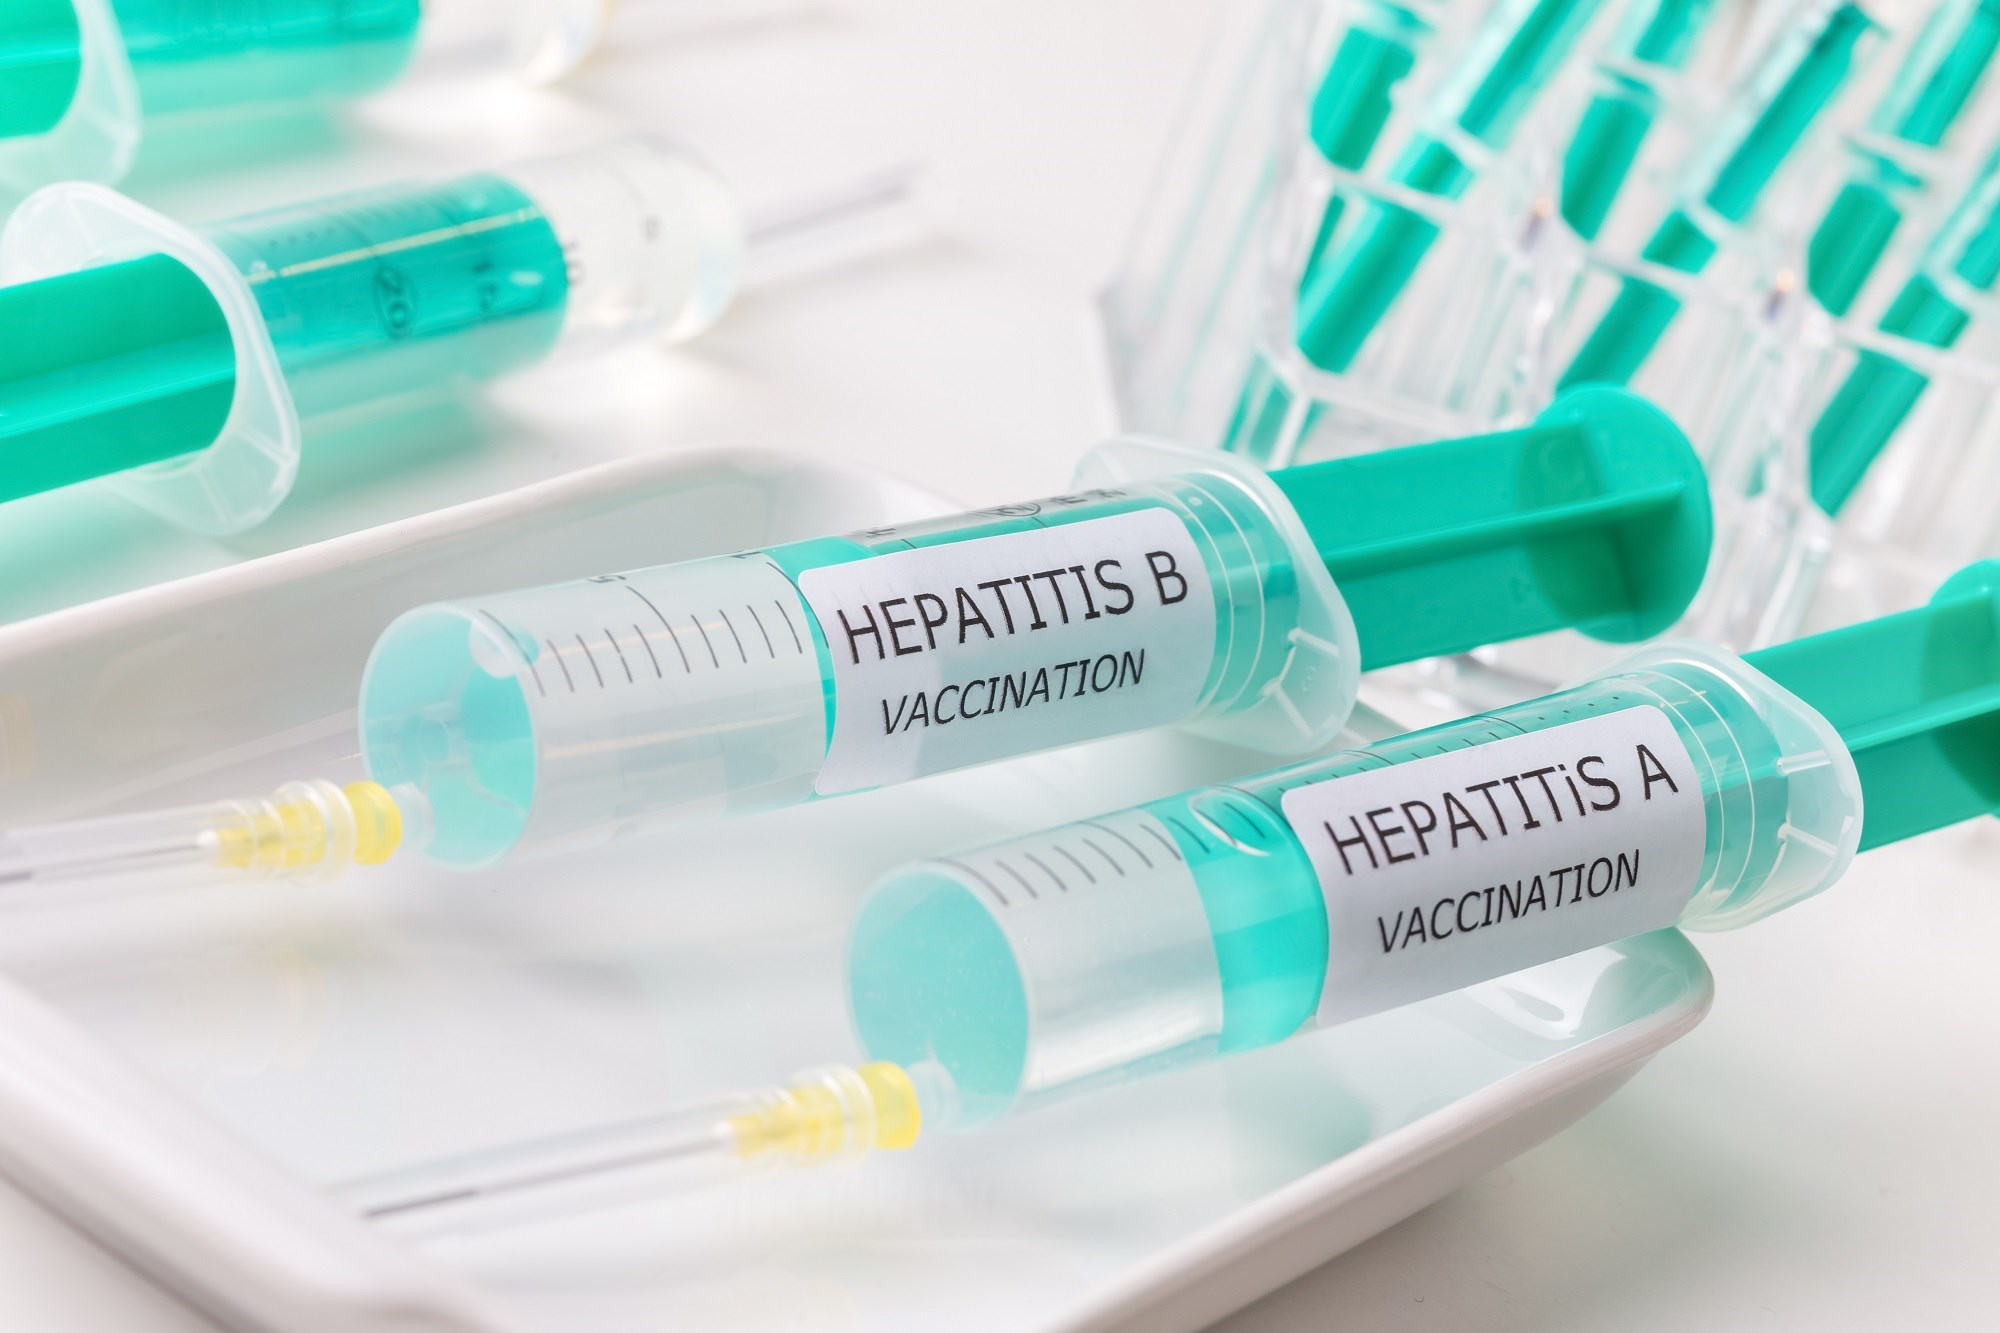 Demographic Insights Into Hepatitis Vaccination Practices